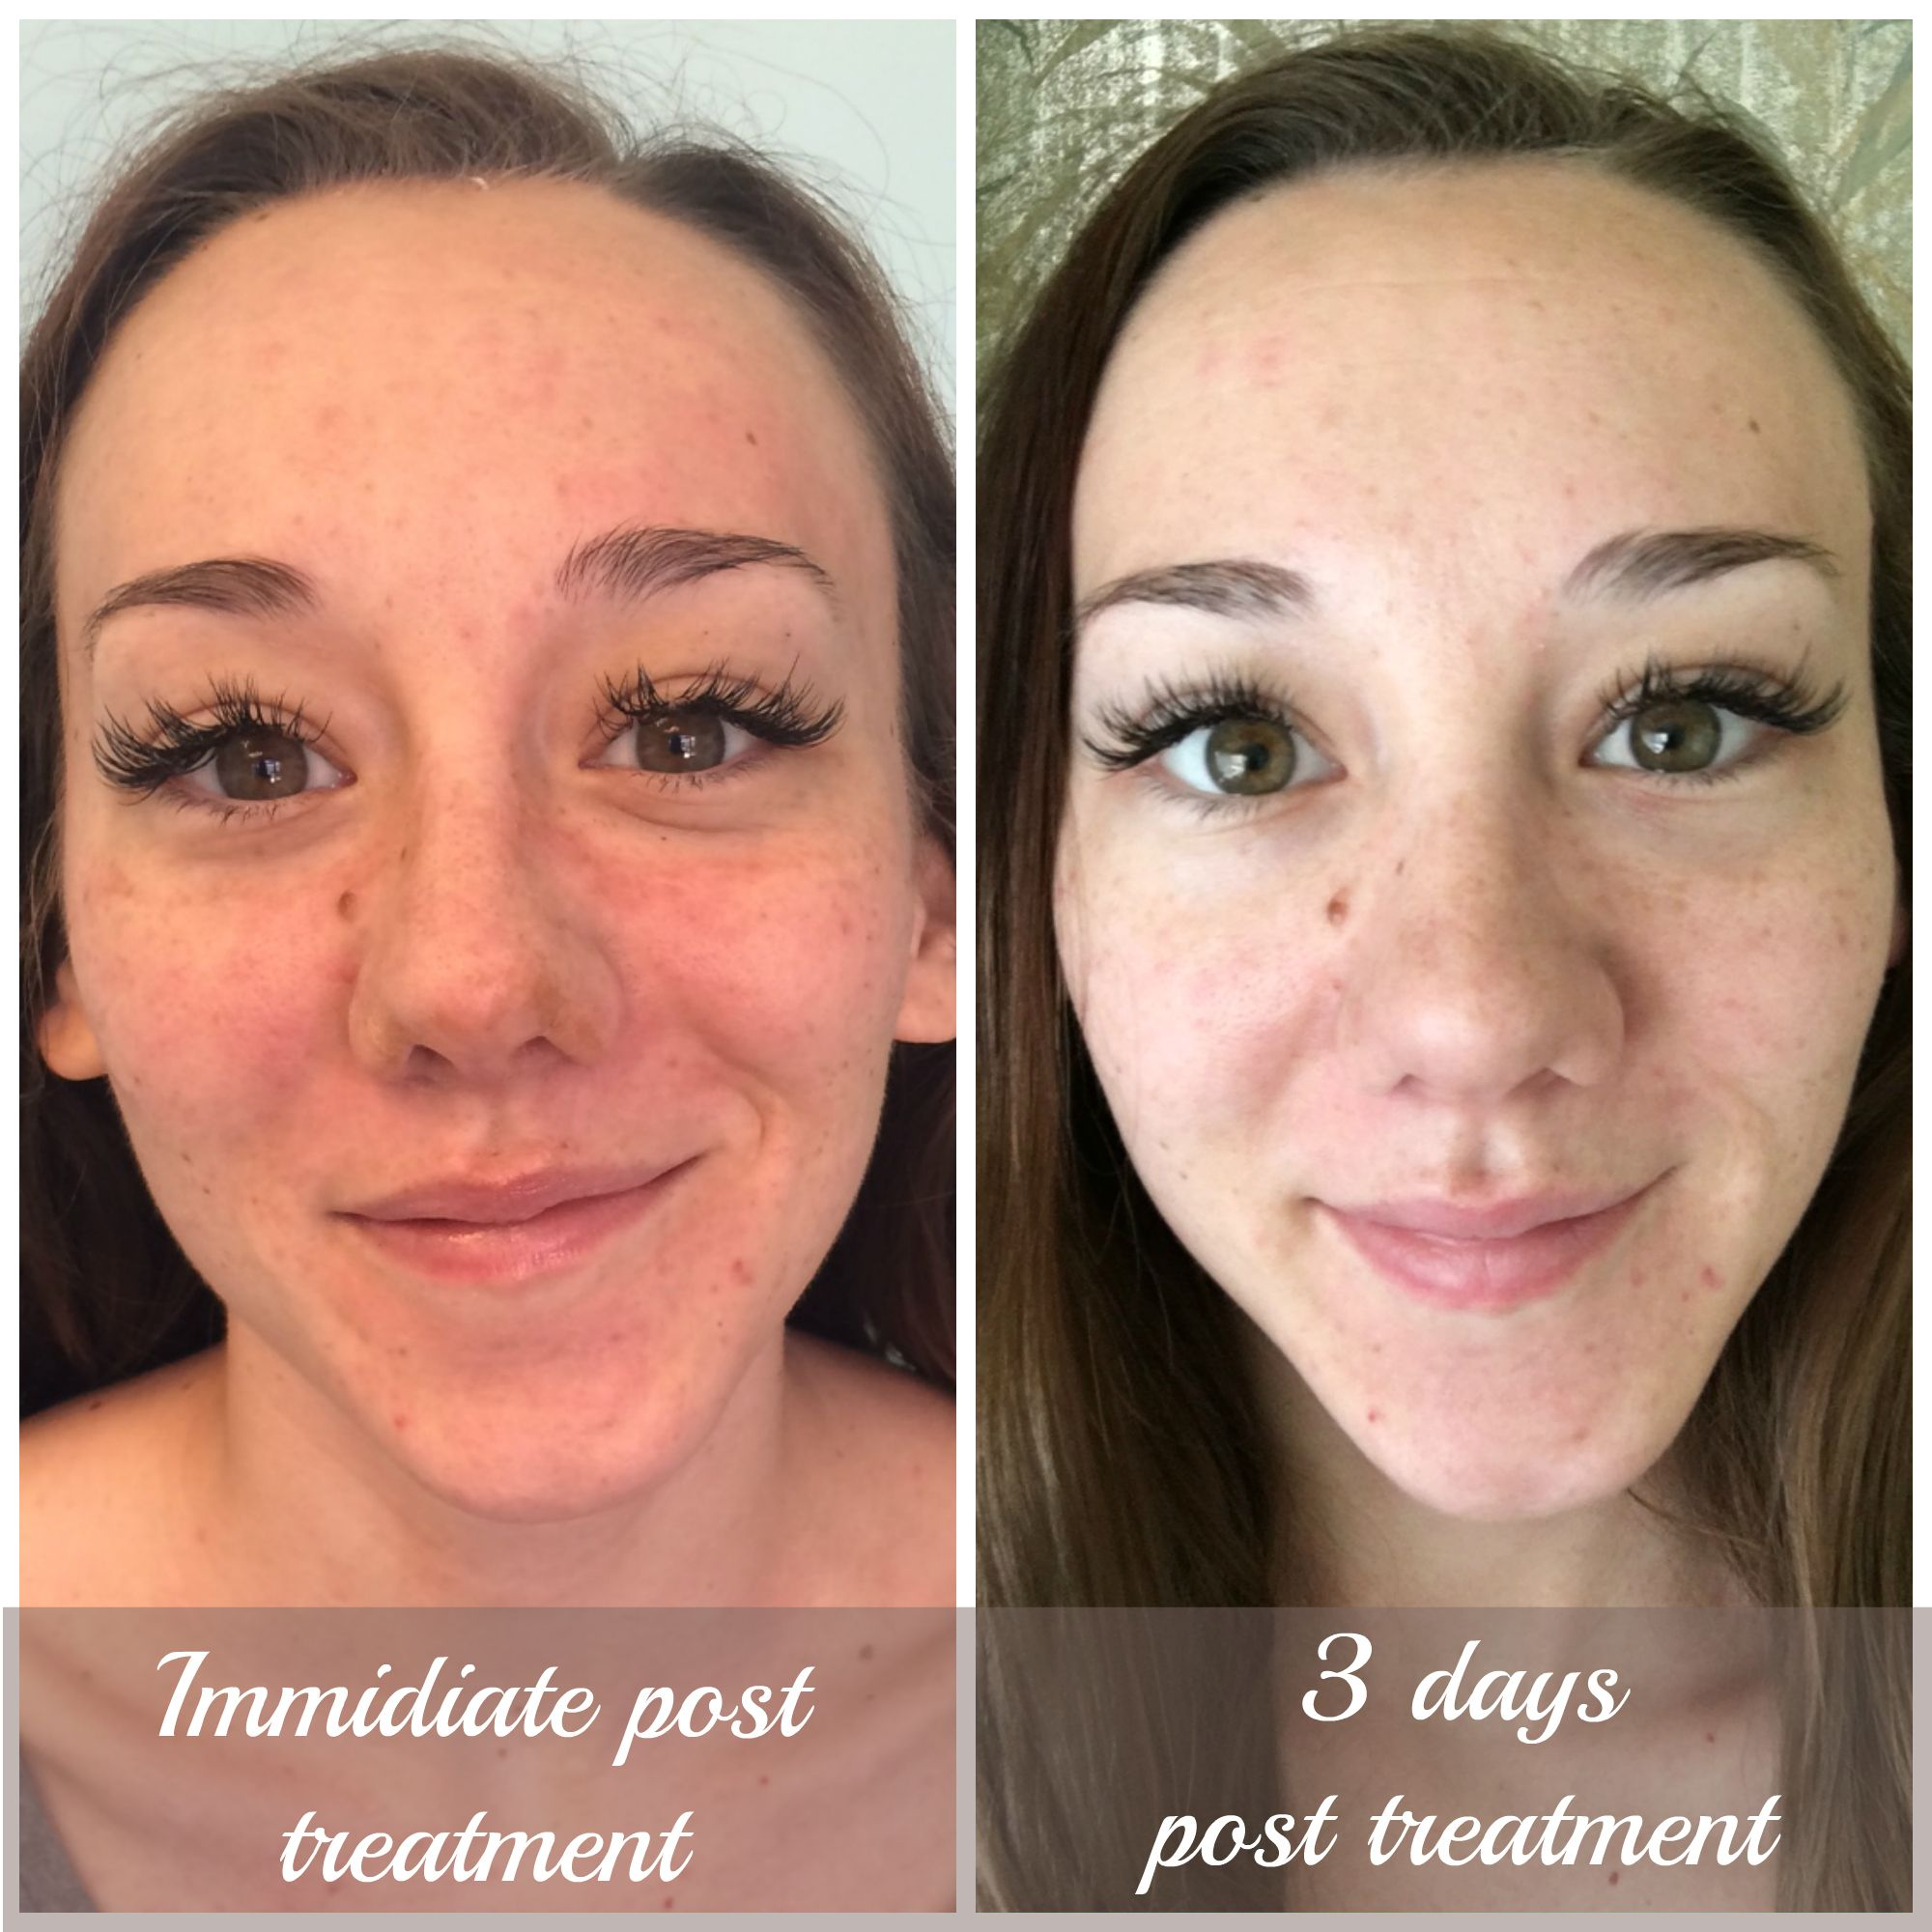 Facial before and after photos